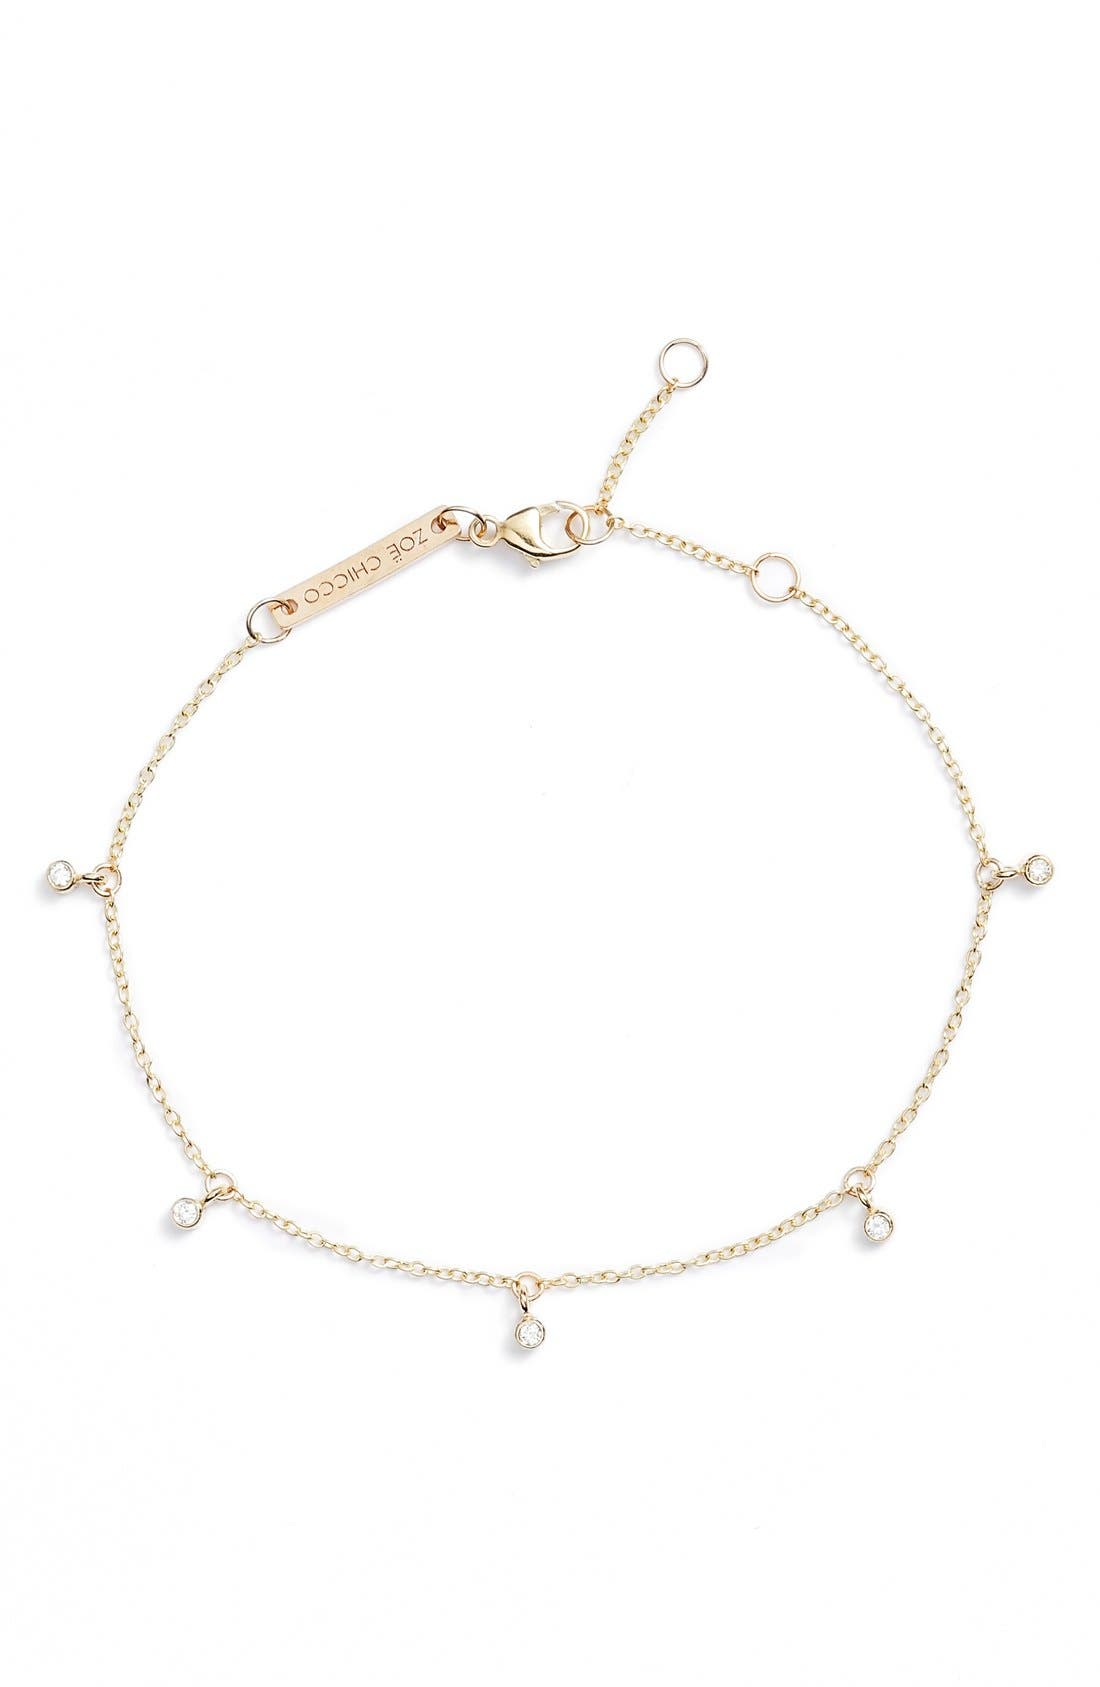 Main Image - Zoë Chicco Dangling Diamond Bracelet